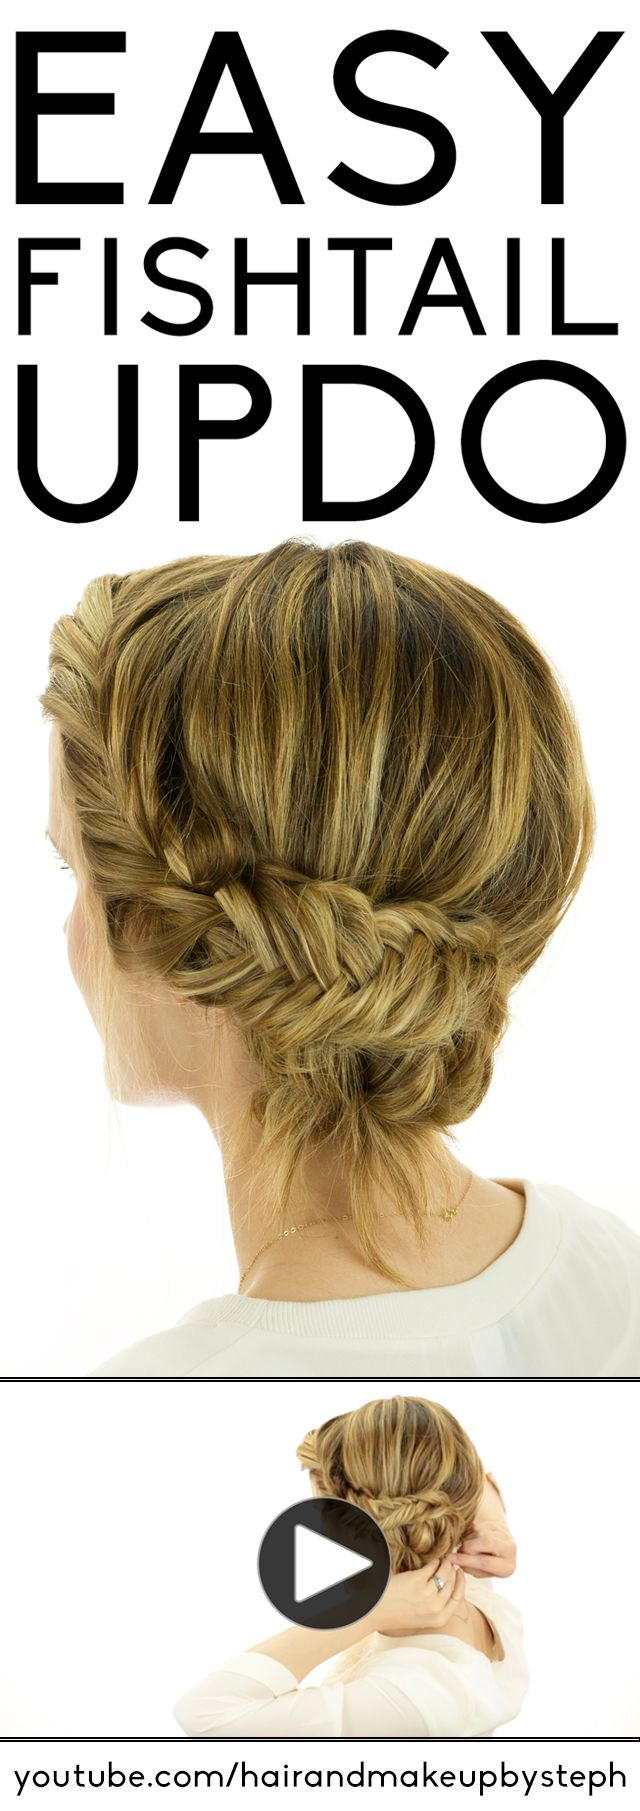 Easy Fishtail Braid Updo Hairstyle Tutorial